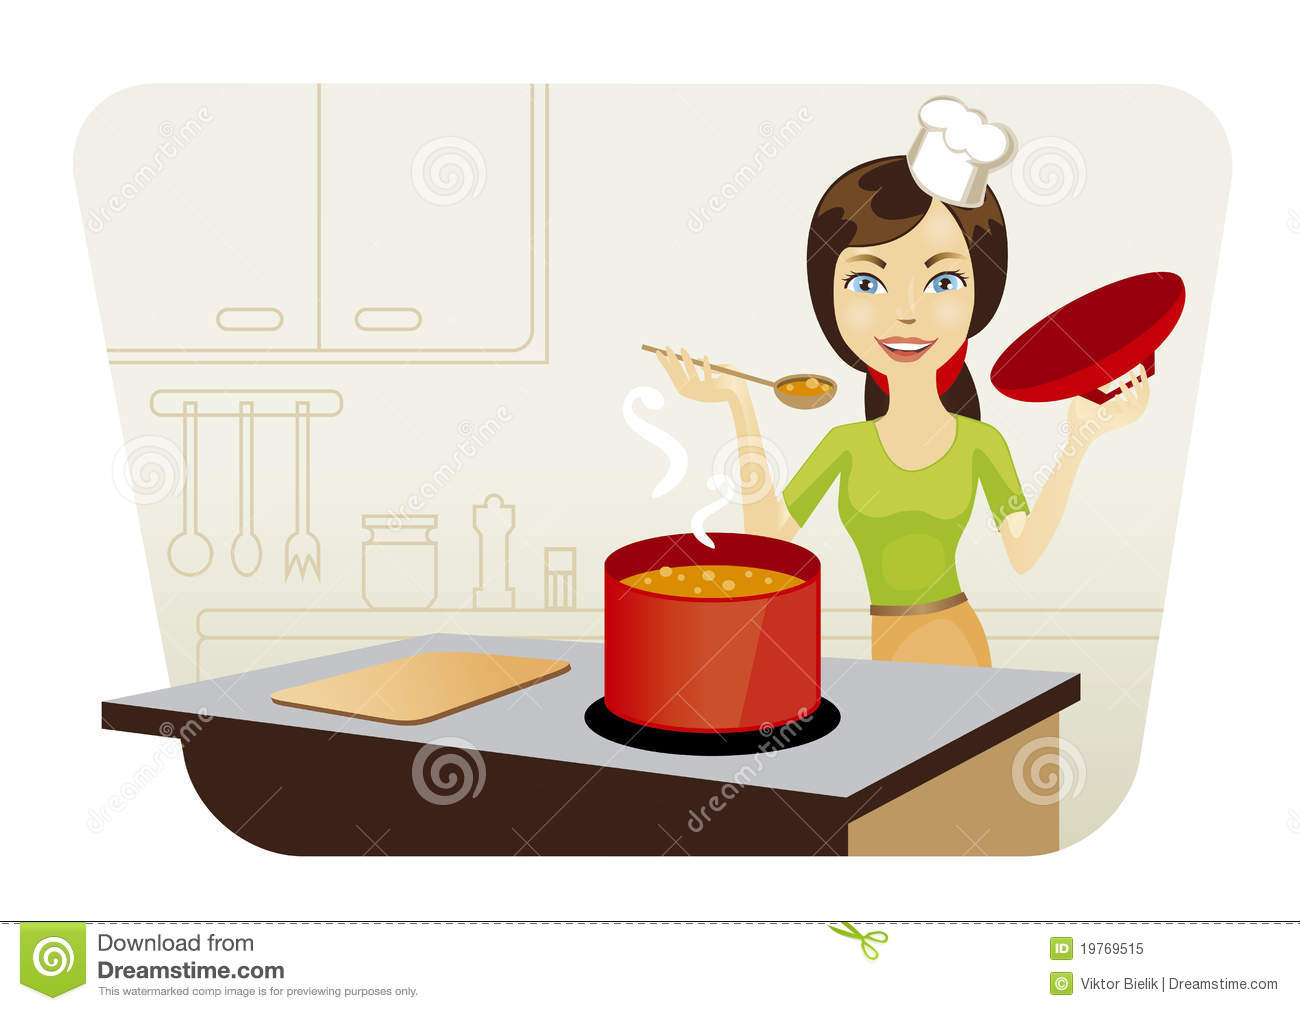 mother cooking in the kitchen clipart 7 | Clipart Station